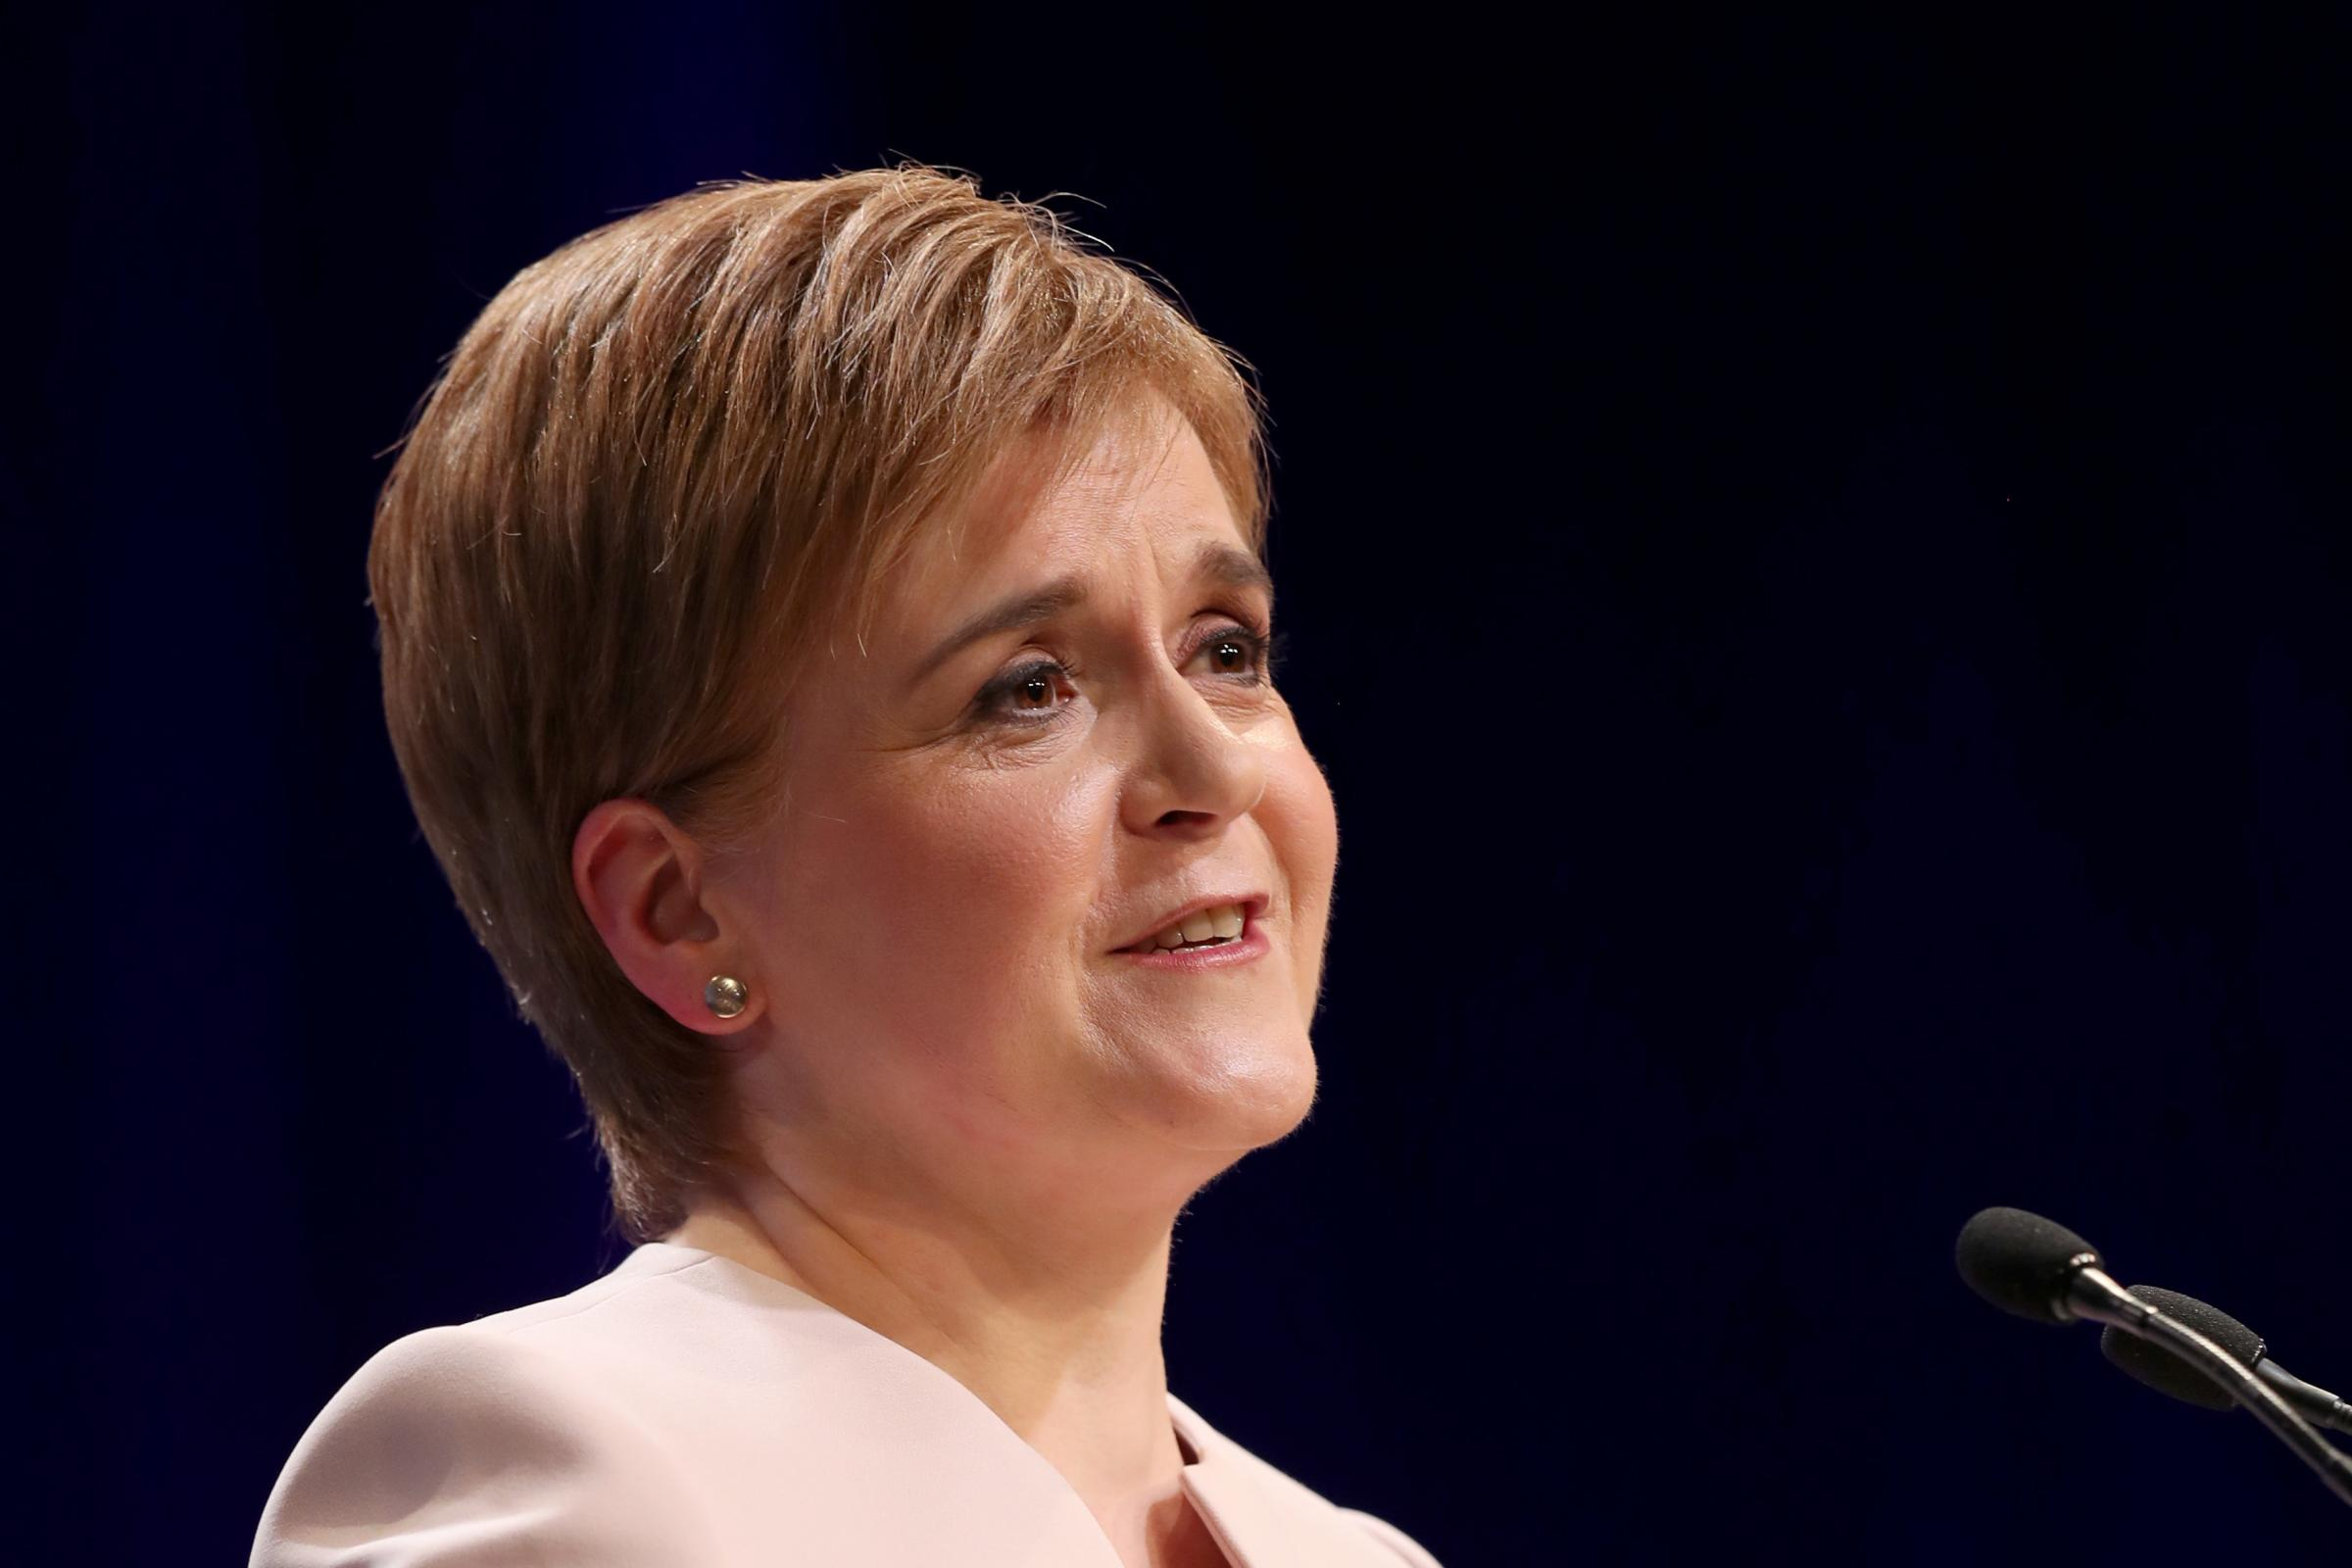 Brexit must not erode human rights, warns Sturgeon